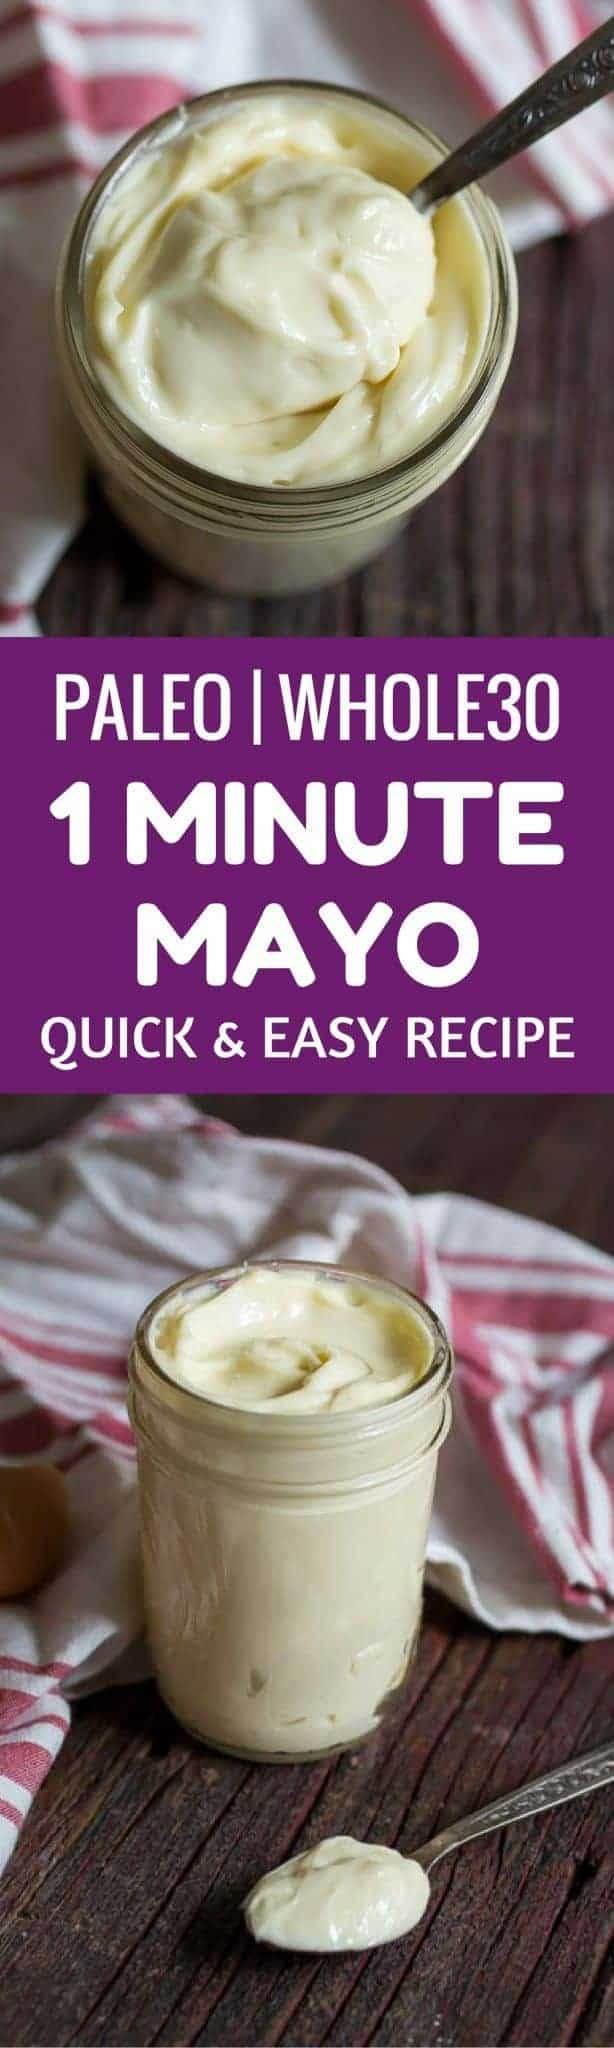 Whole30 1 Minute Mayo Recipe. Paleo mayonnaise recipe. Easy and healthy homemade mayo recipe. Paleo, whole 30 mayo recipe. Easy whole30 recipes here. Immersion blender mayo! Easy, 1 minute paleo mayonnaise recipe. Homemade mayo. Healthy homemade mayonnaise.